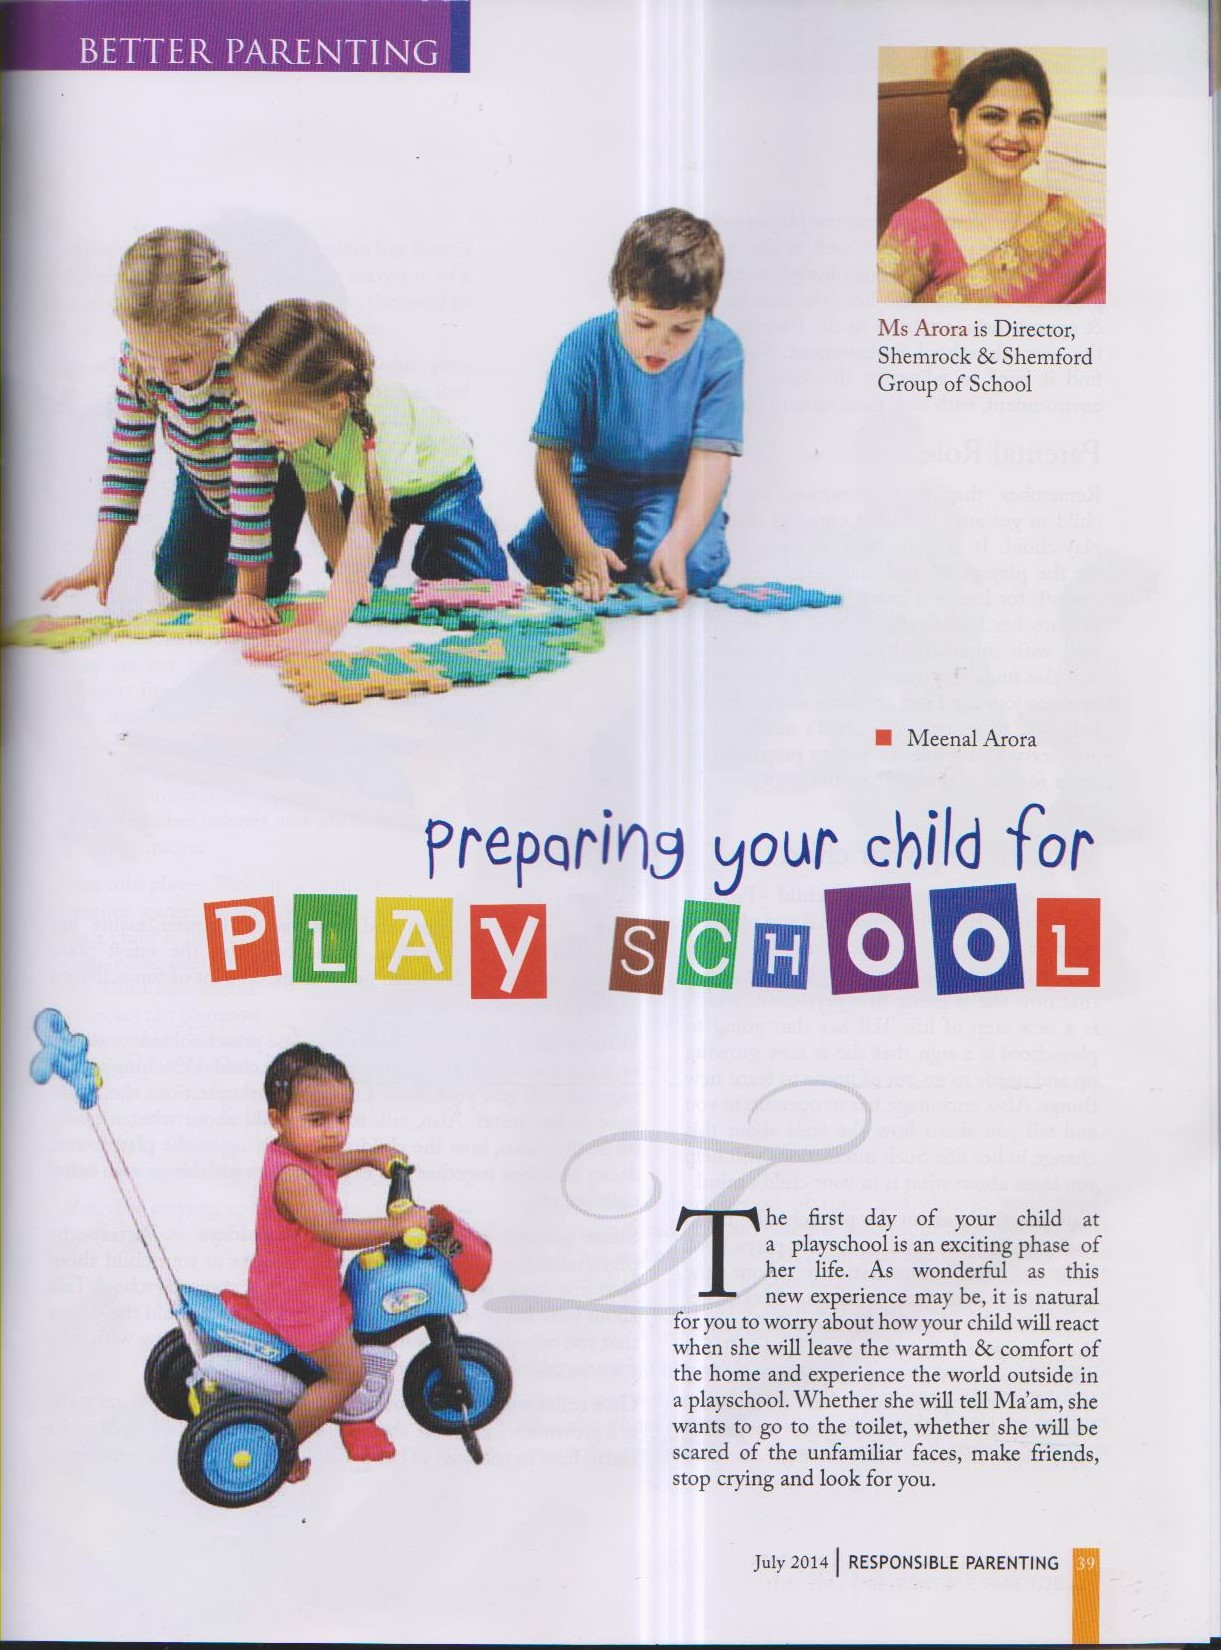 Preparing your child for playschool